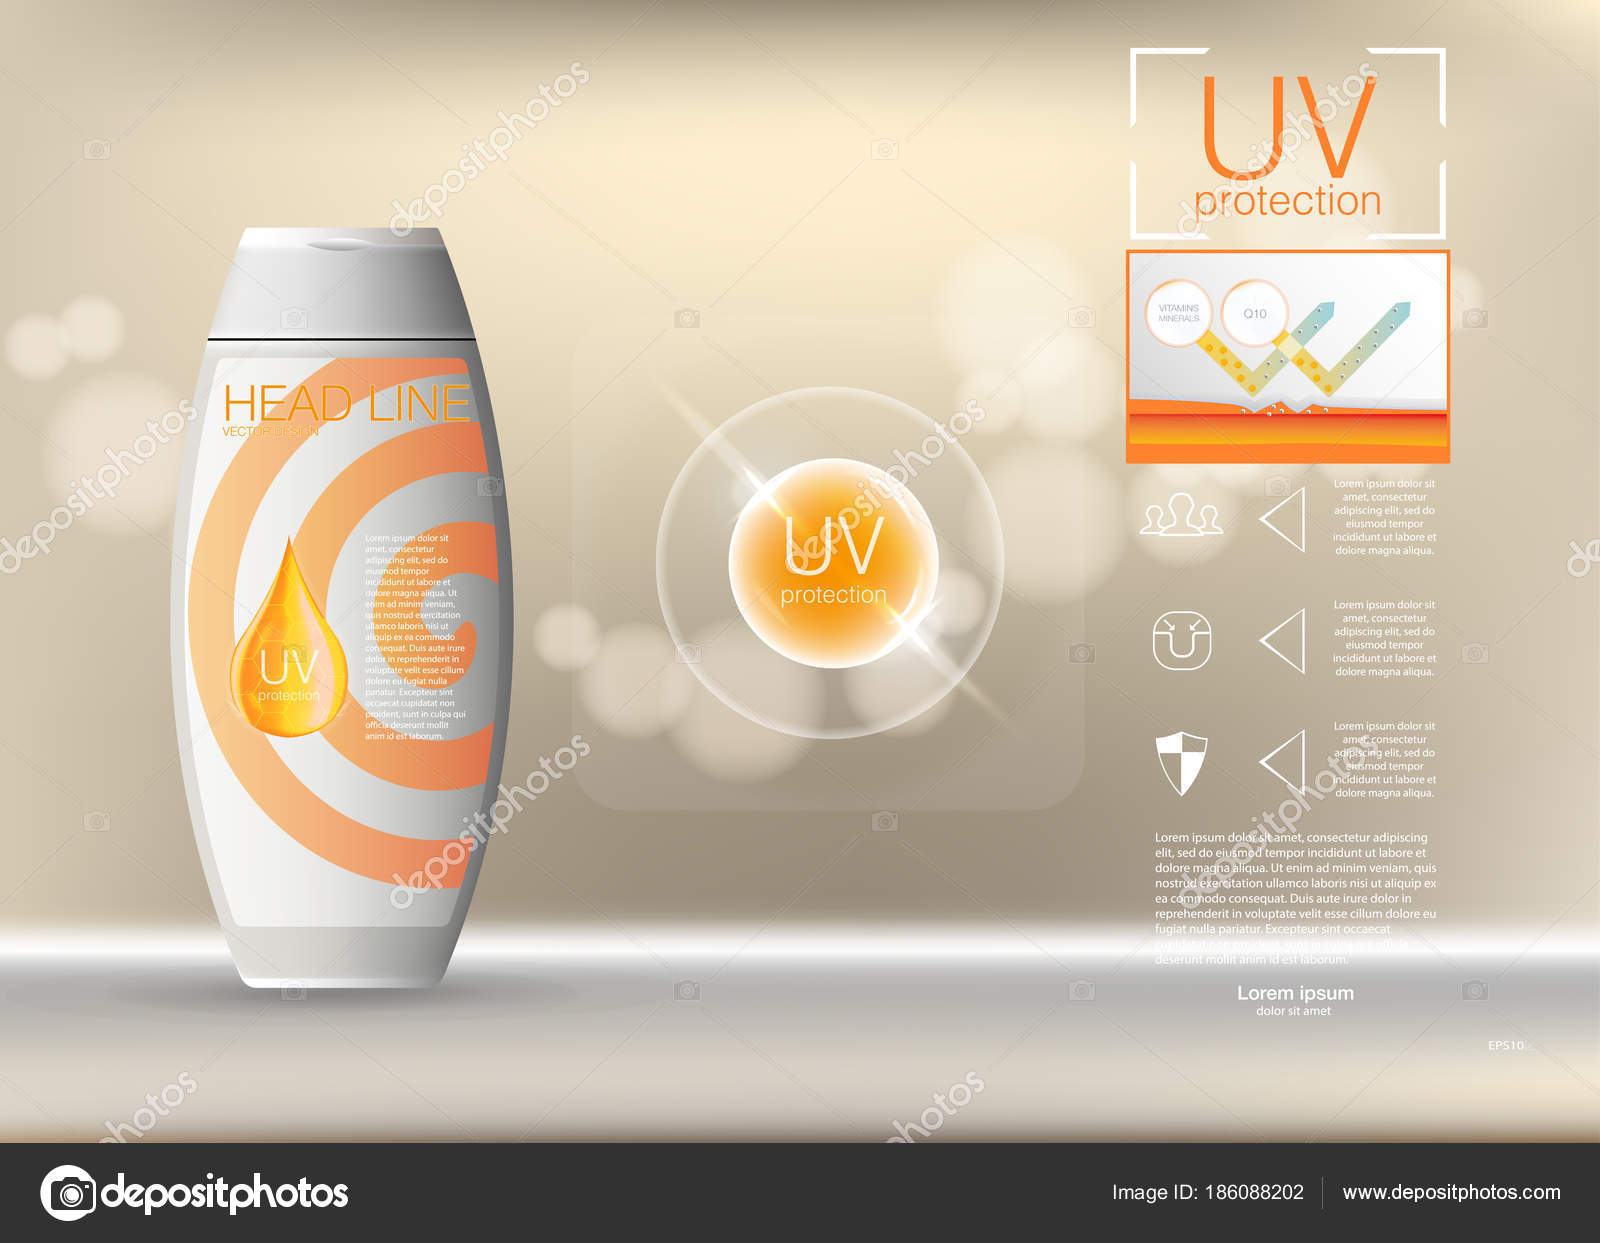 Design Cosmetics Product Advertising Vector Illustration EPS - Product ad template